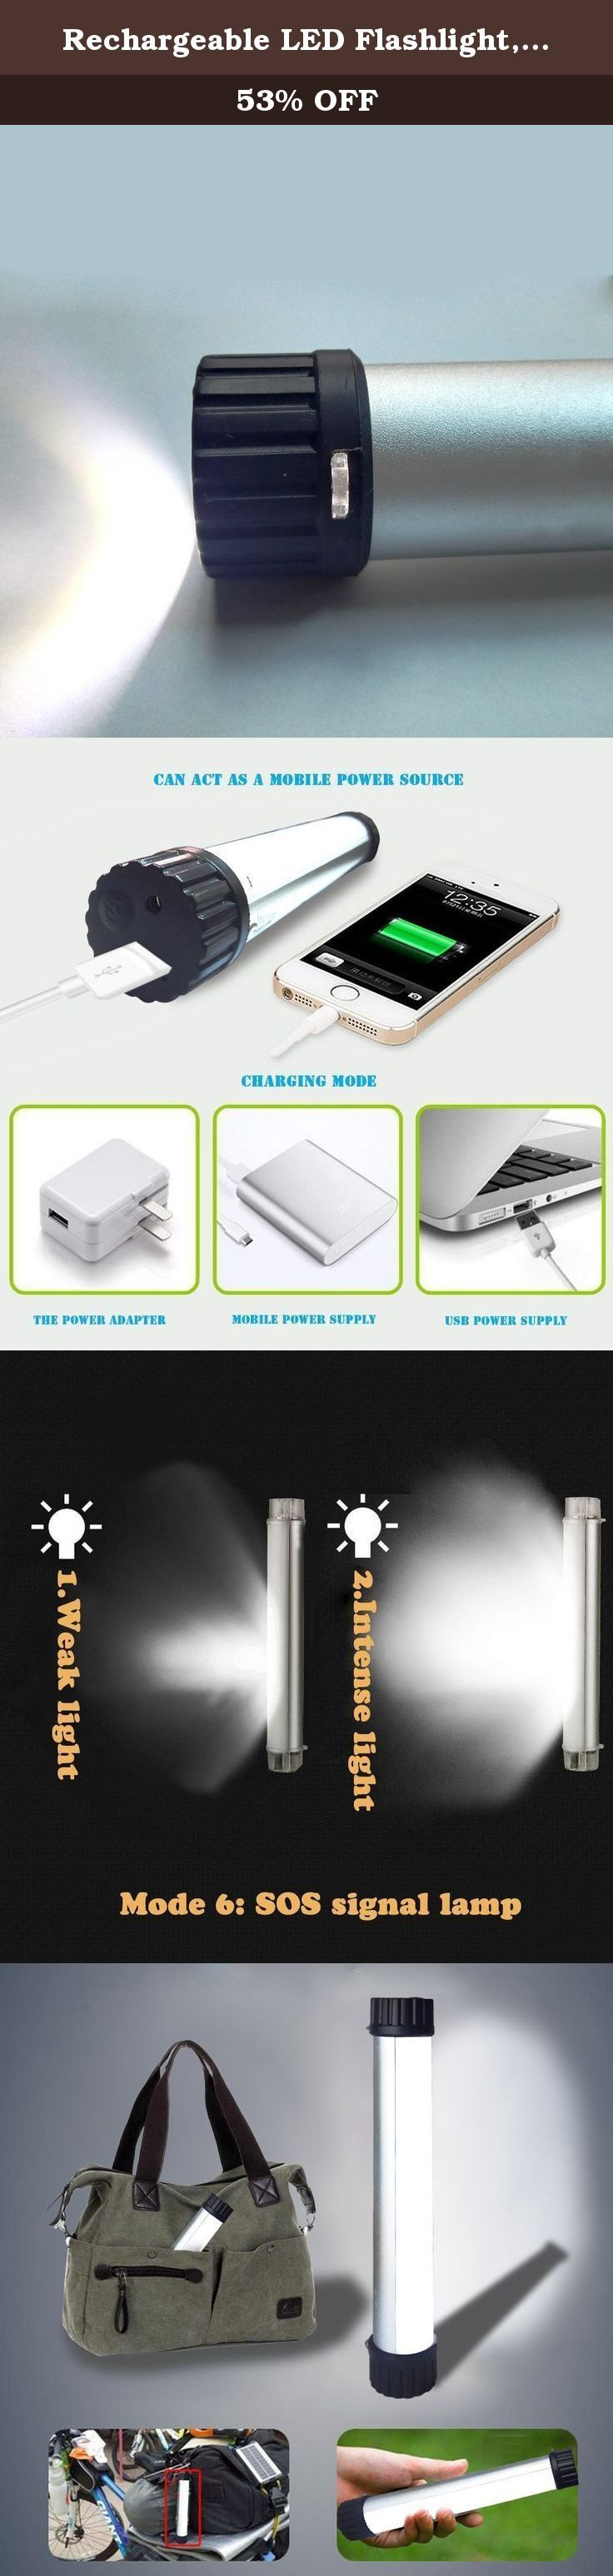 Rechargeable LED Flashlight,BAVIER® LED Light Stick,Mini USB Charging LED Emergency Light,SOS Emergency Light,Portable LED Camping Light for Camping/ Fishing/ Tent/ Outdoor/ Emergency (LED Stick). Specifications: 【Light】:Tube light 330LM LED /Flashlight: 110LM LED 【name】:Multi-purpose Light 【Tube Type】:LED 【package】:1 pc 【Battery life】: Mode 1>28hrs Mode 2>50hrs Mode 3>75hrs Mode 4>15hrs Mode 5>7hrs Mode 6>13hrs 【Use】:Camping,Lightening,USB Charging 【Charge Time】:>5 Hours charged by AC...